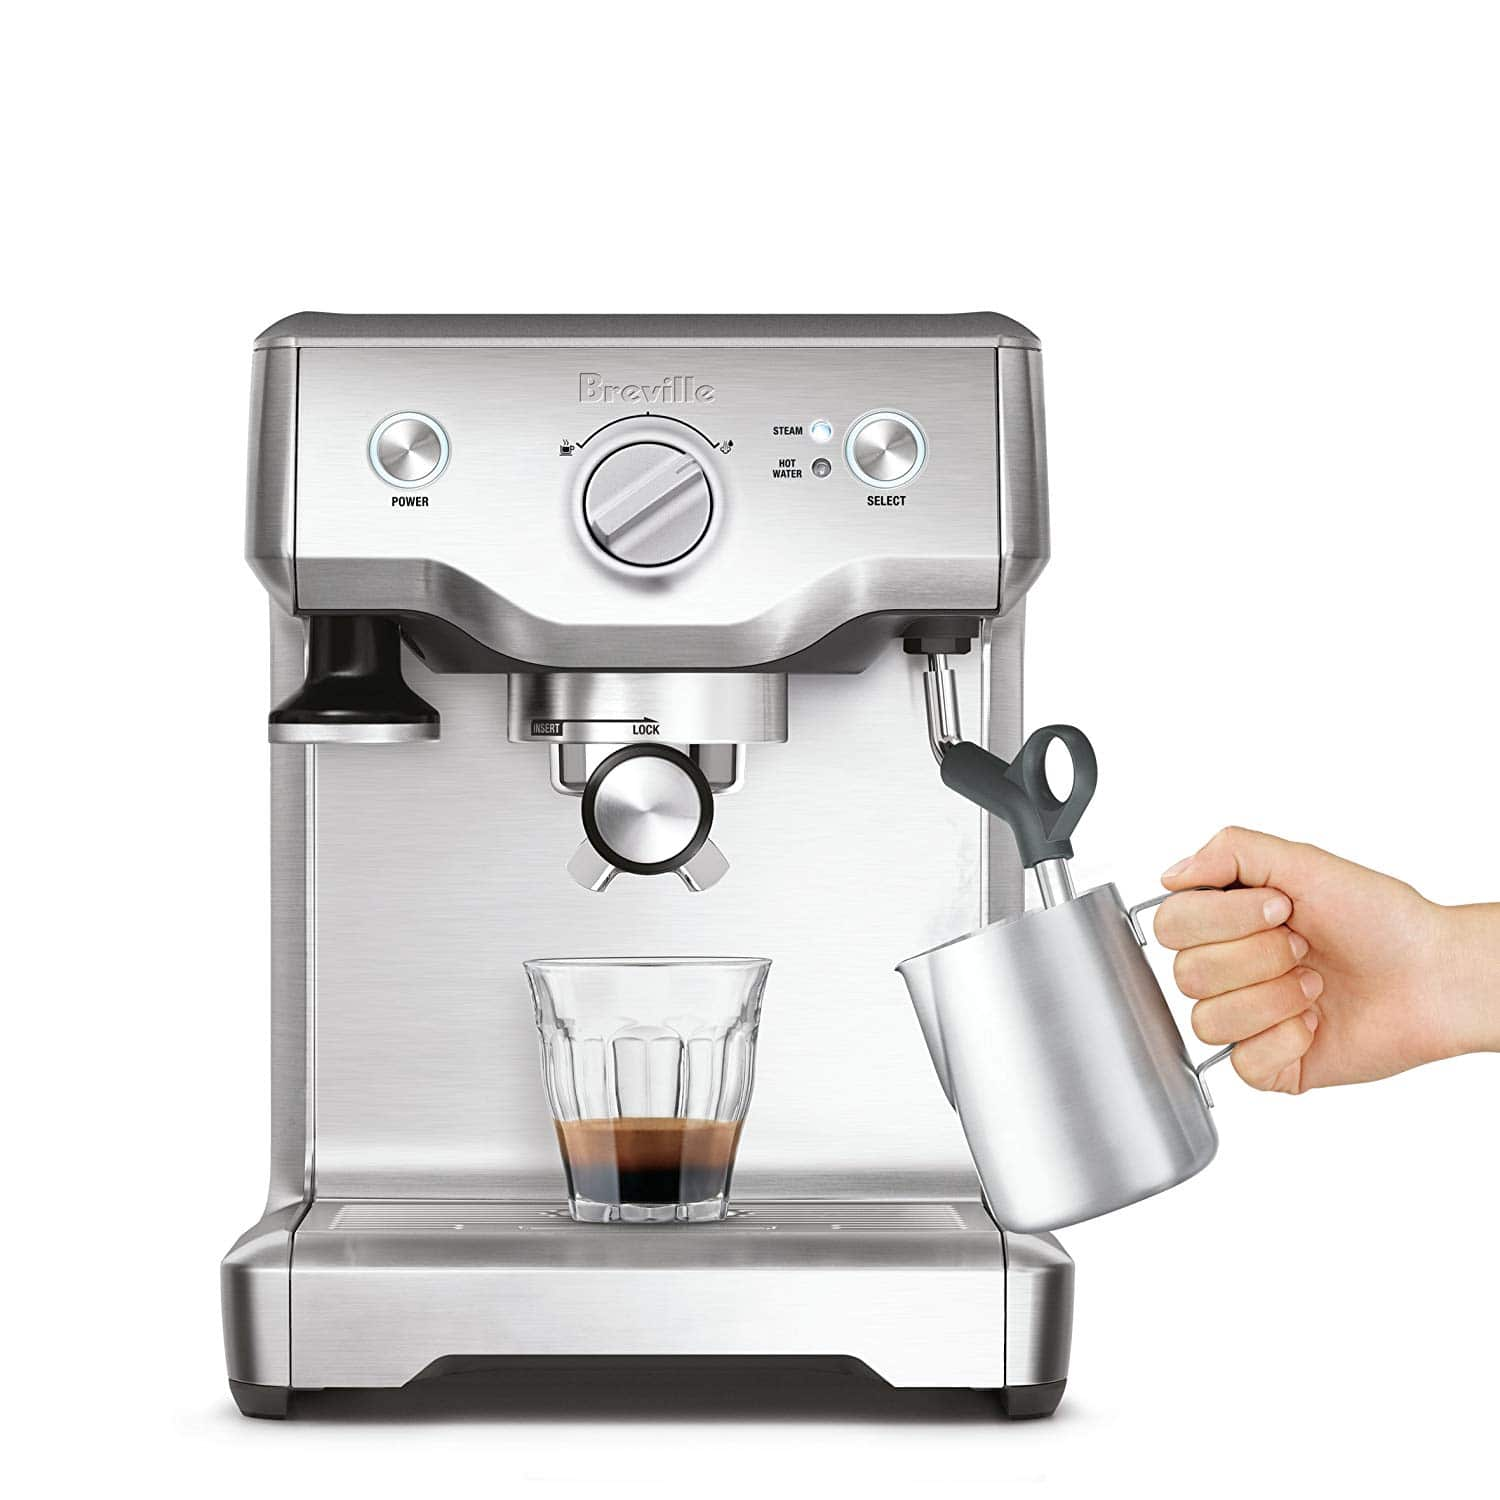 Breville Duo-Temp Pro Espresso Machine Stainless Steel (Refurbished) $249.99